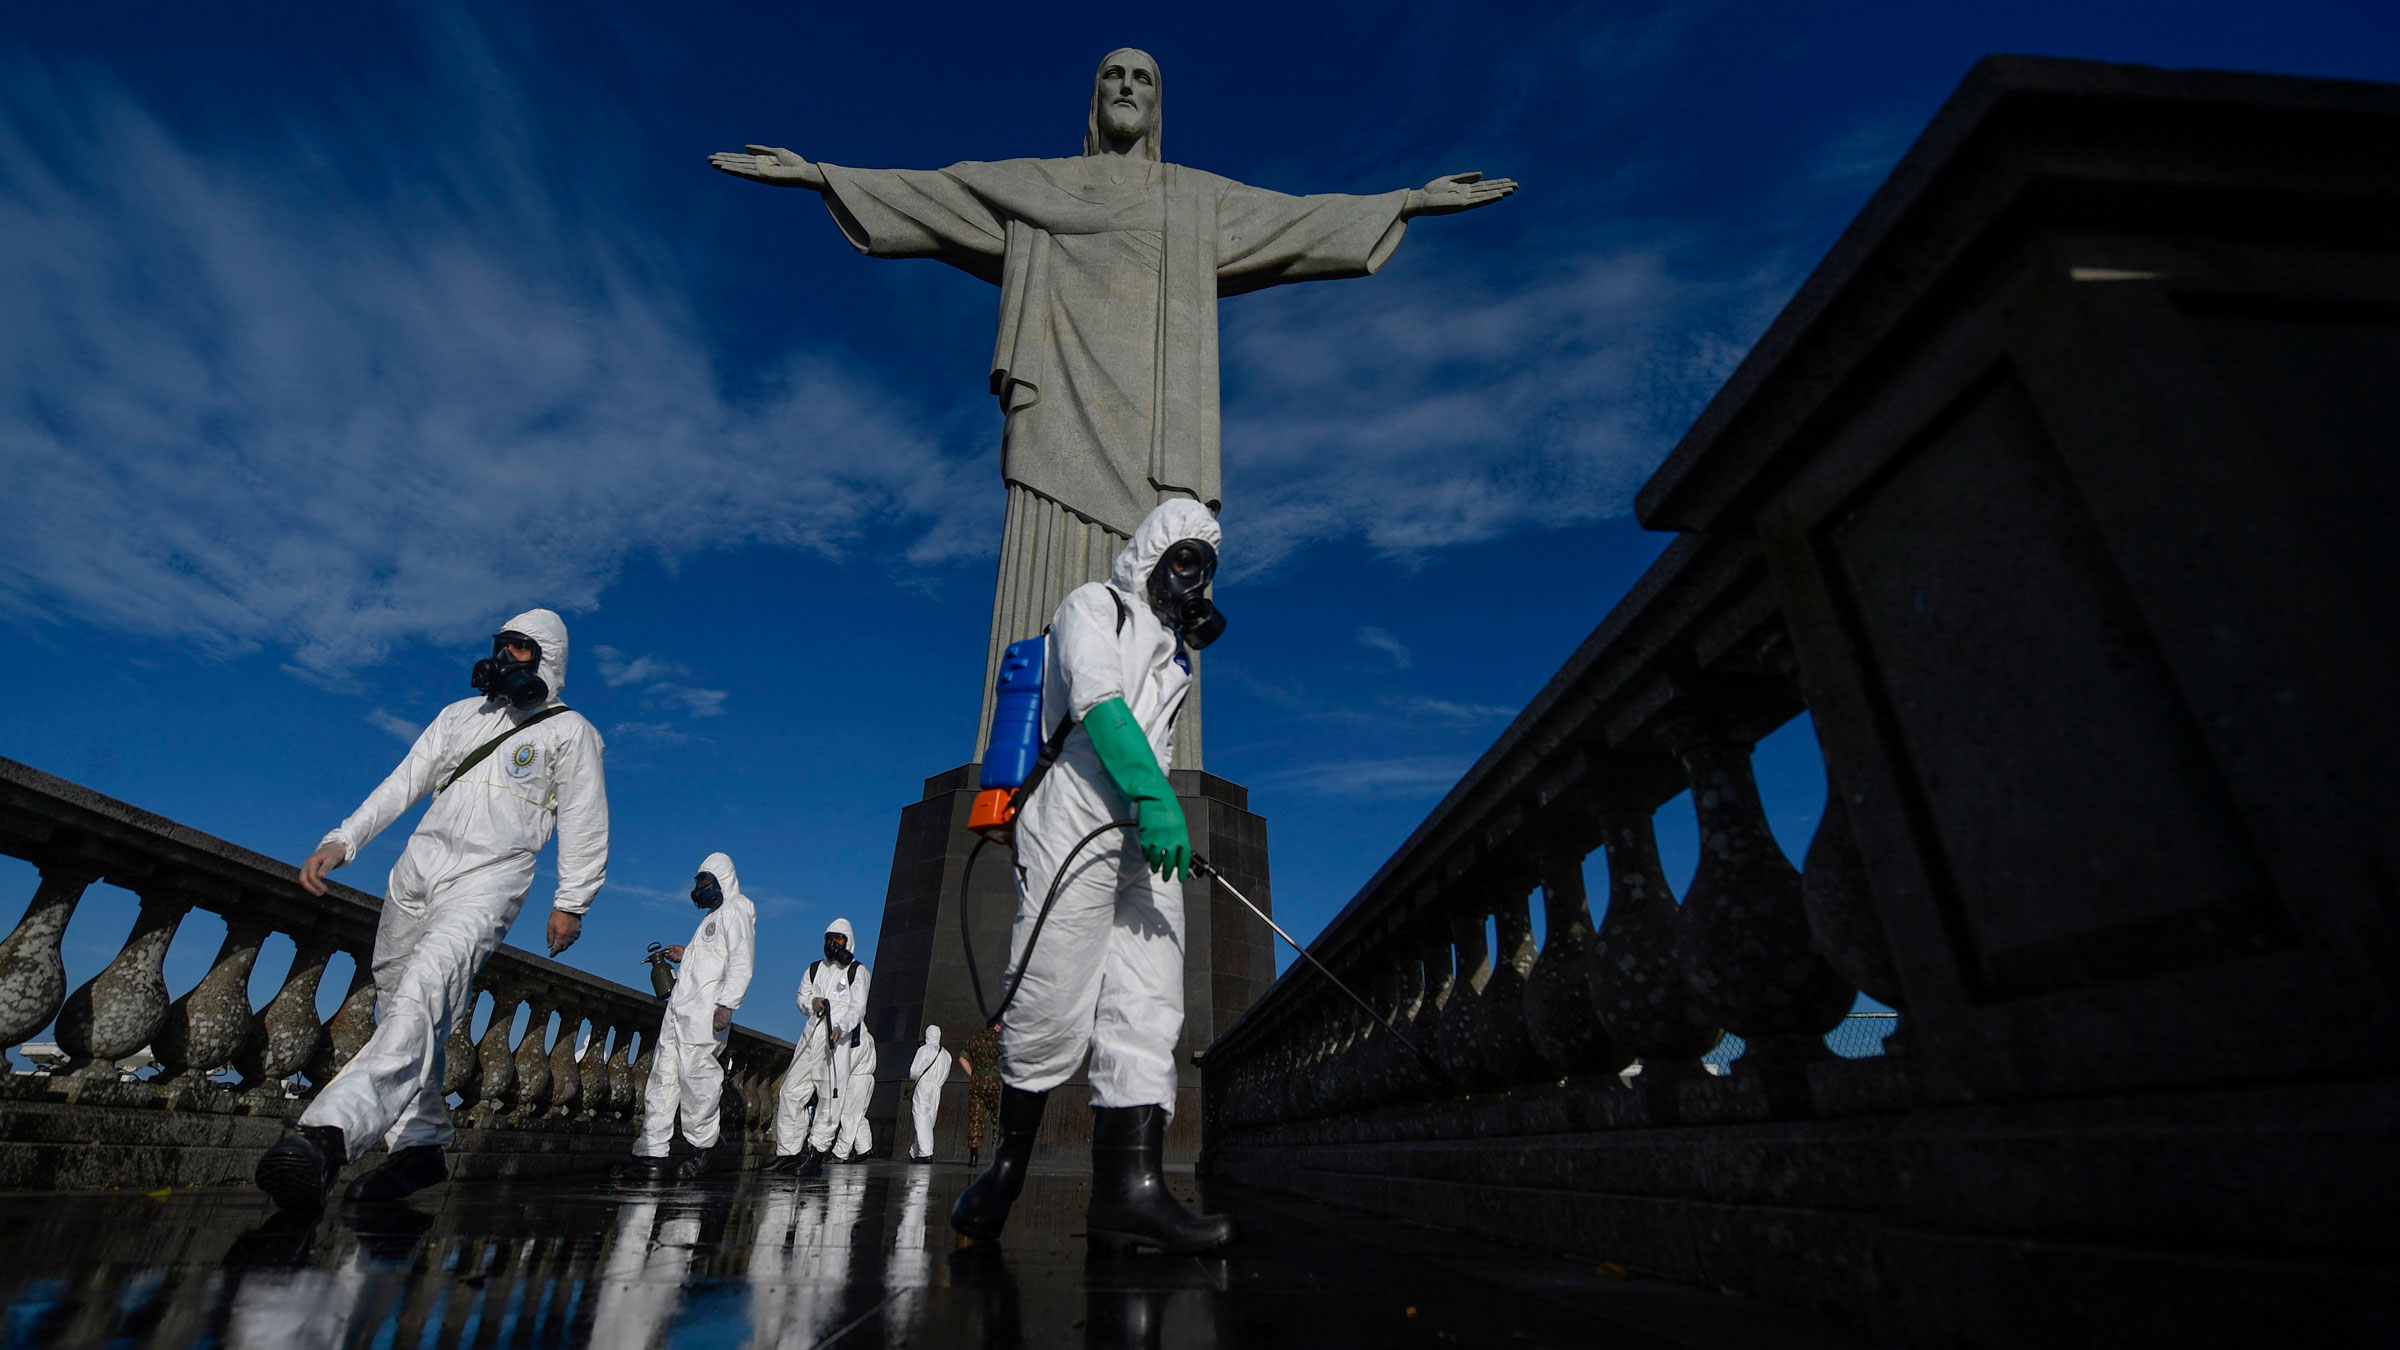 Brazilian soldiers disinfect the area around the Christ the Redeemer statue Thursday in Rio de Janeiro.